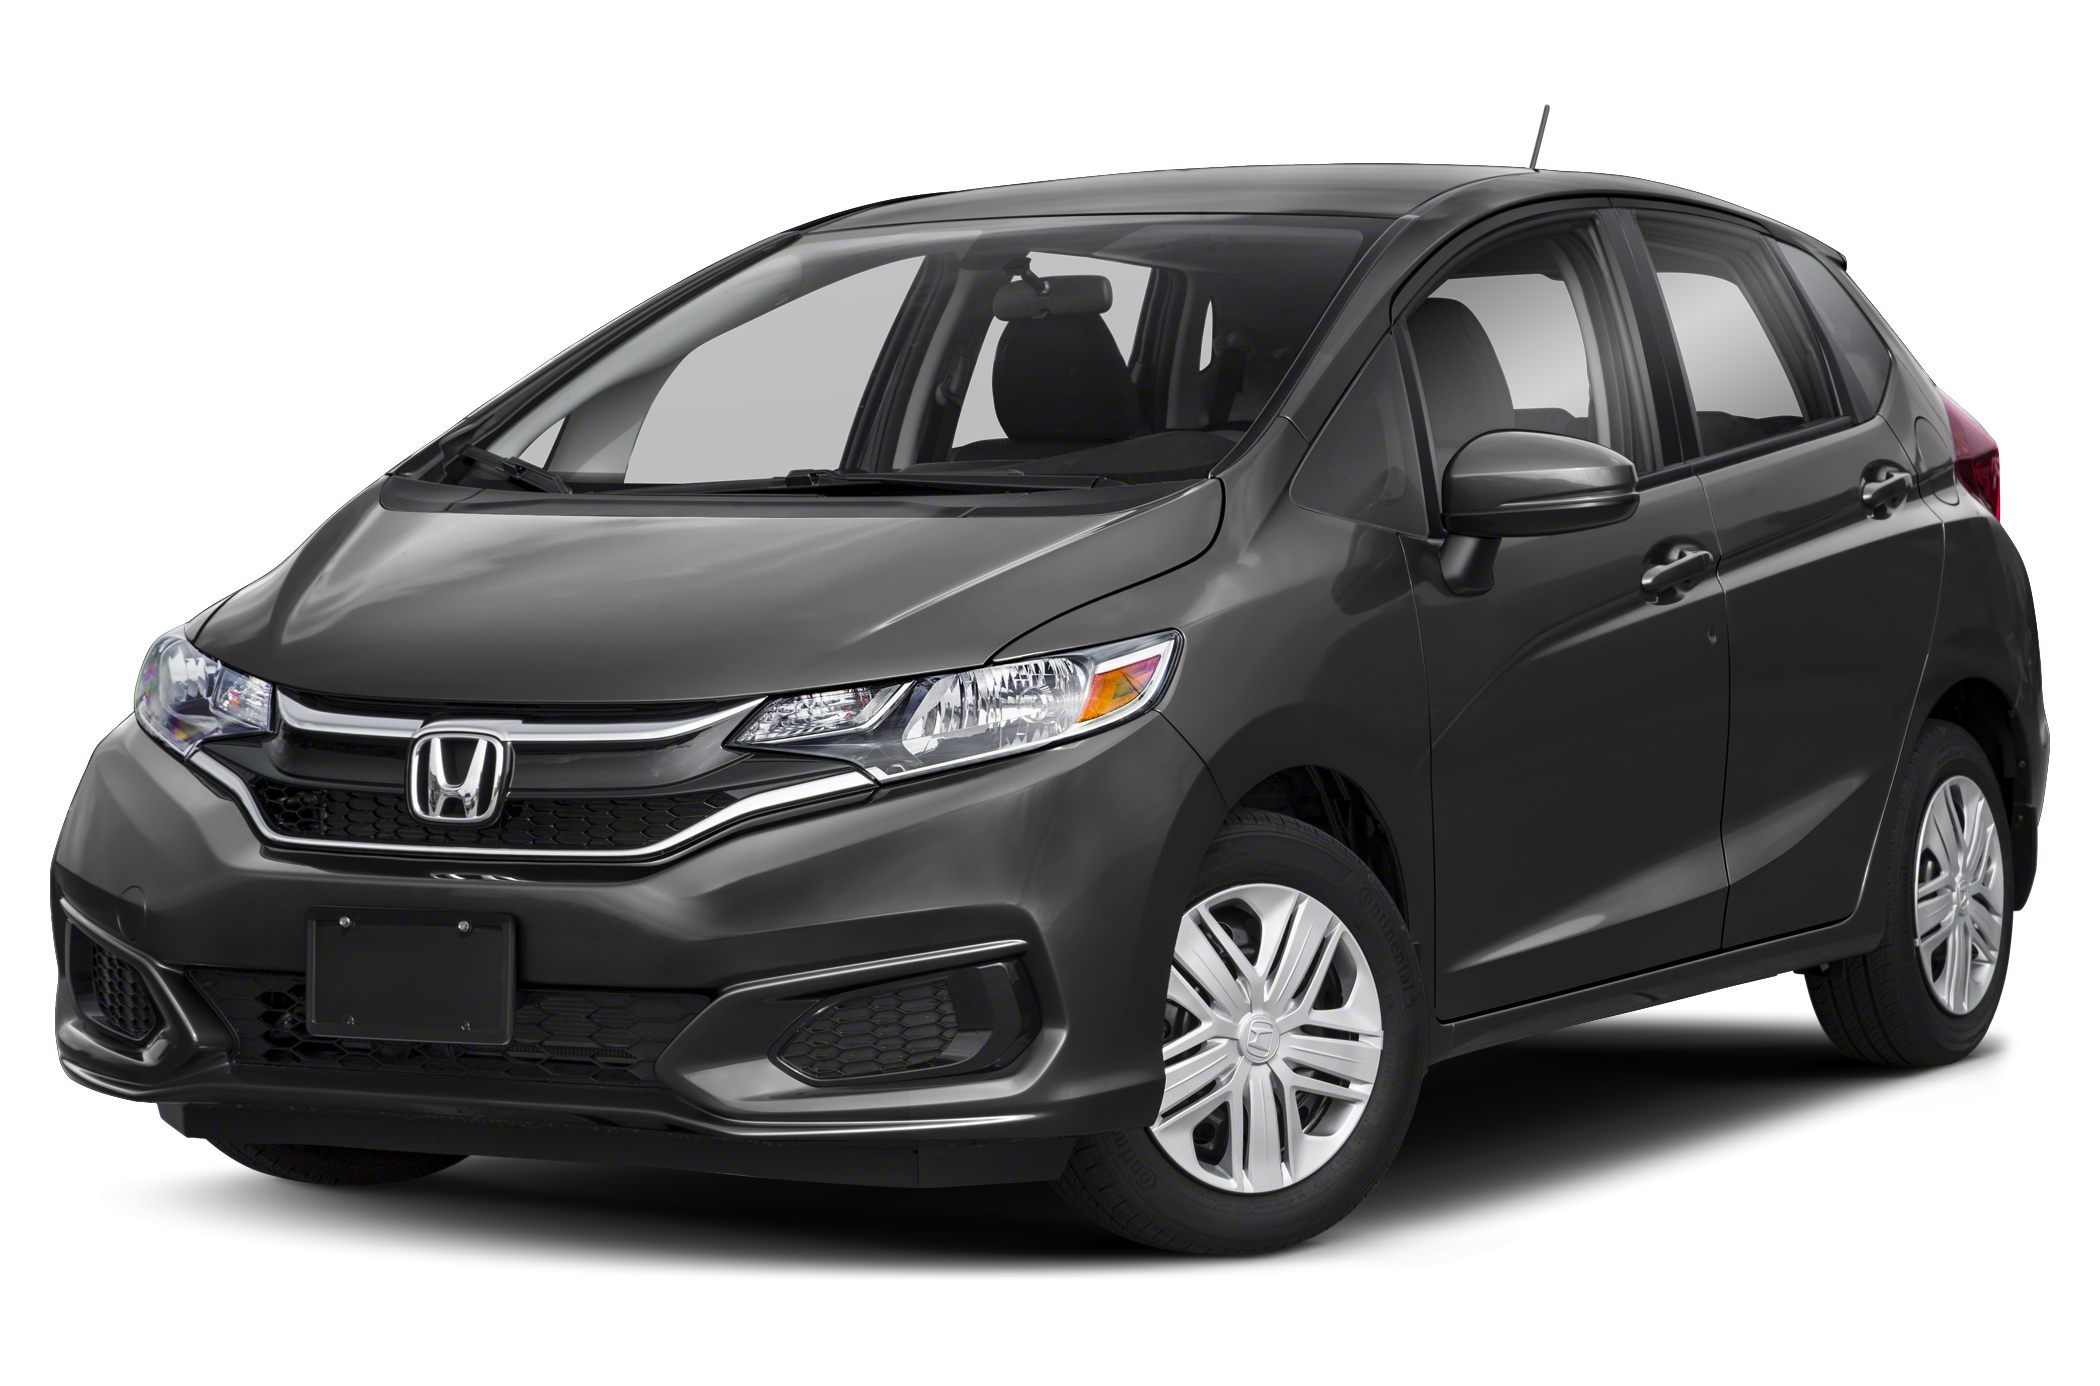 Honda jazzes up the Fit for 2020 and the Tokyo auto show